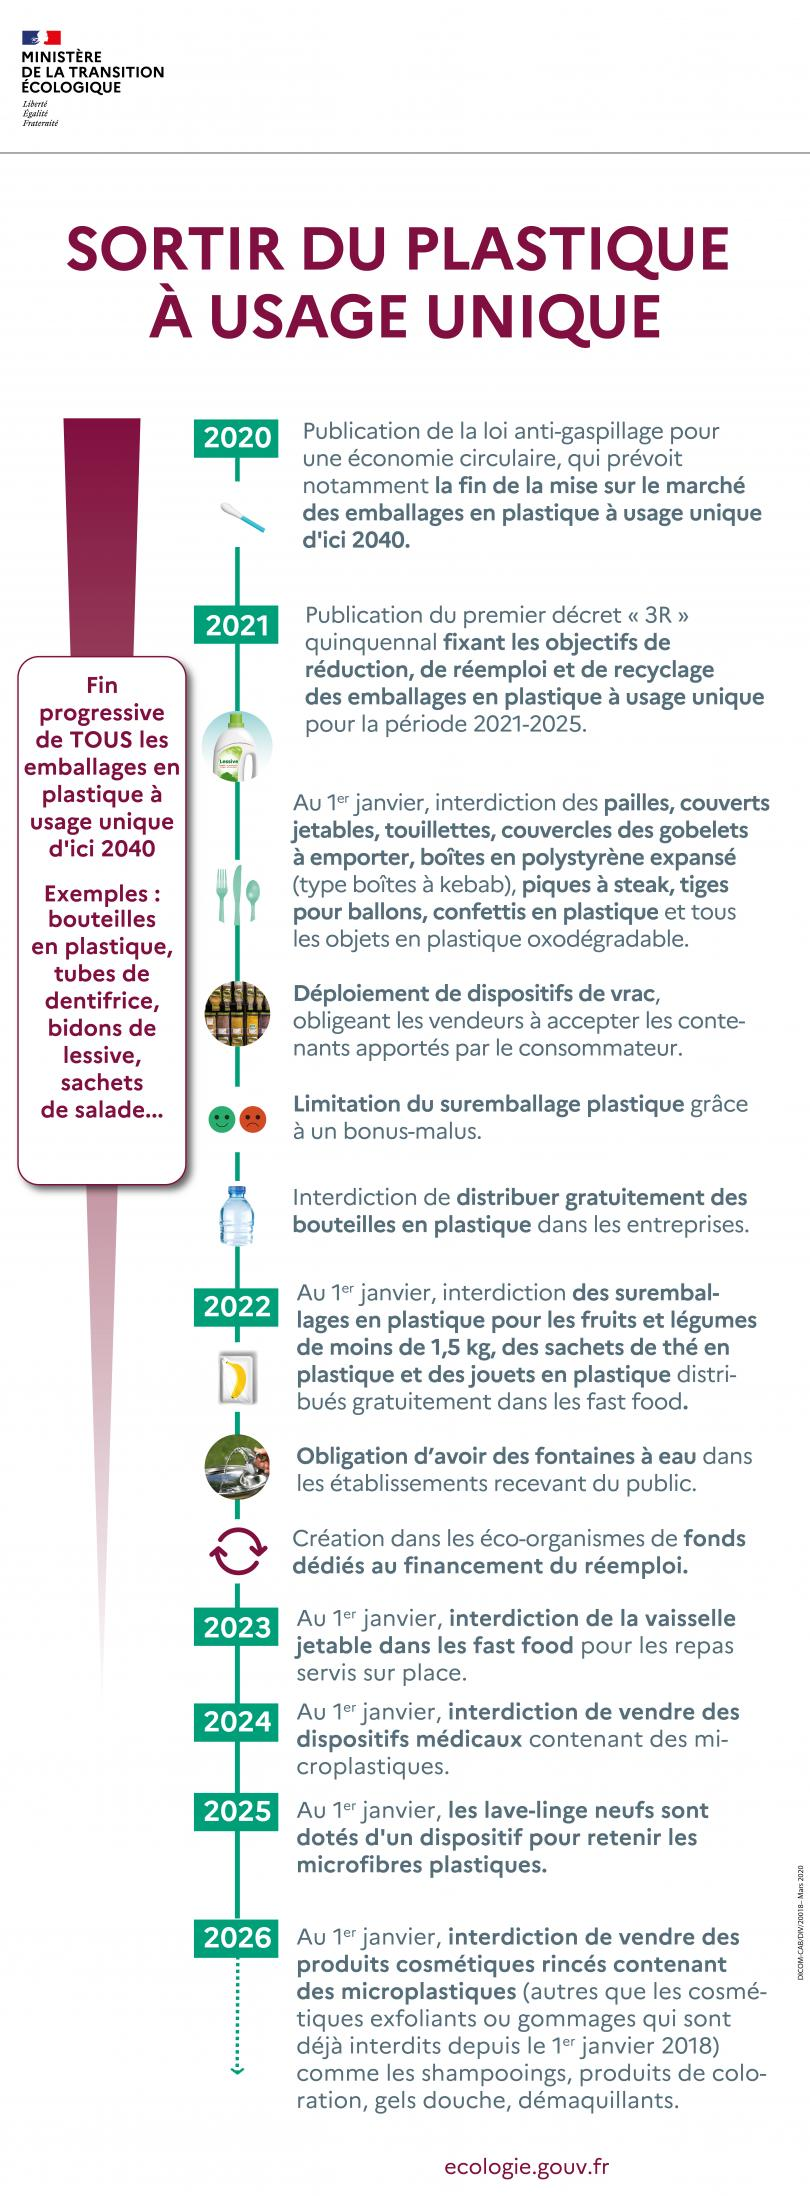 Interdiction progressive des plastiques à usage unique